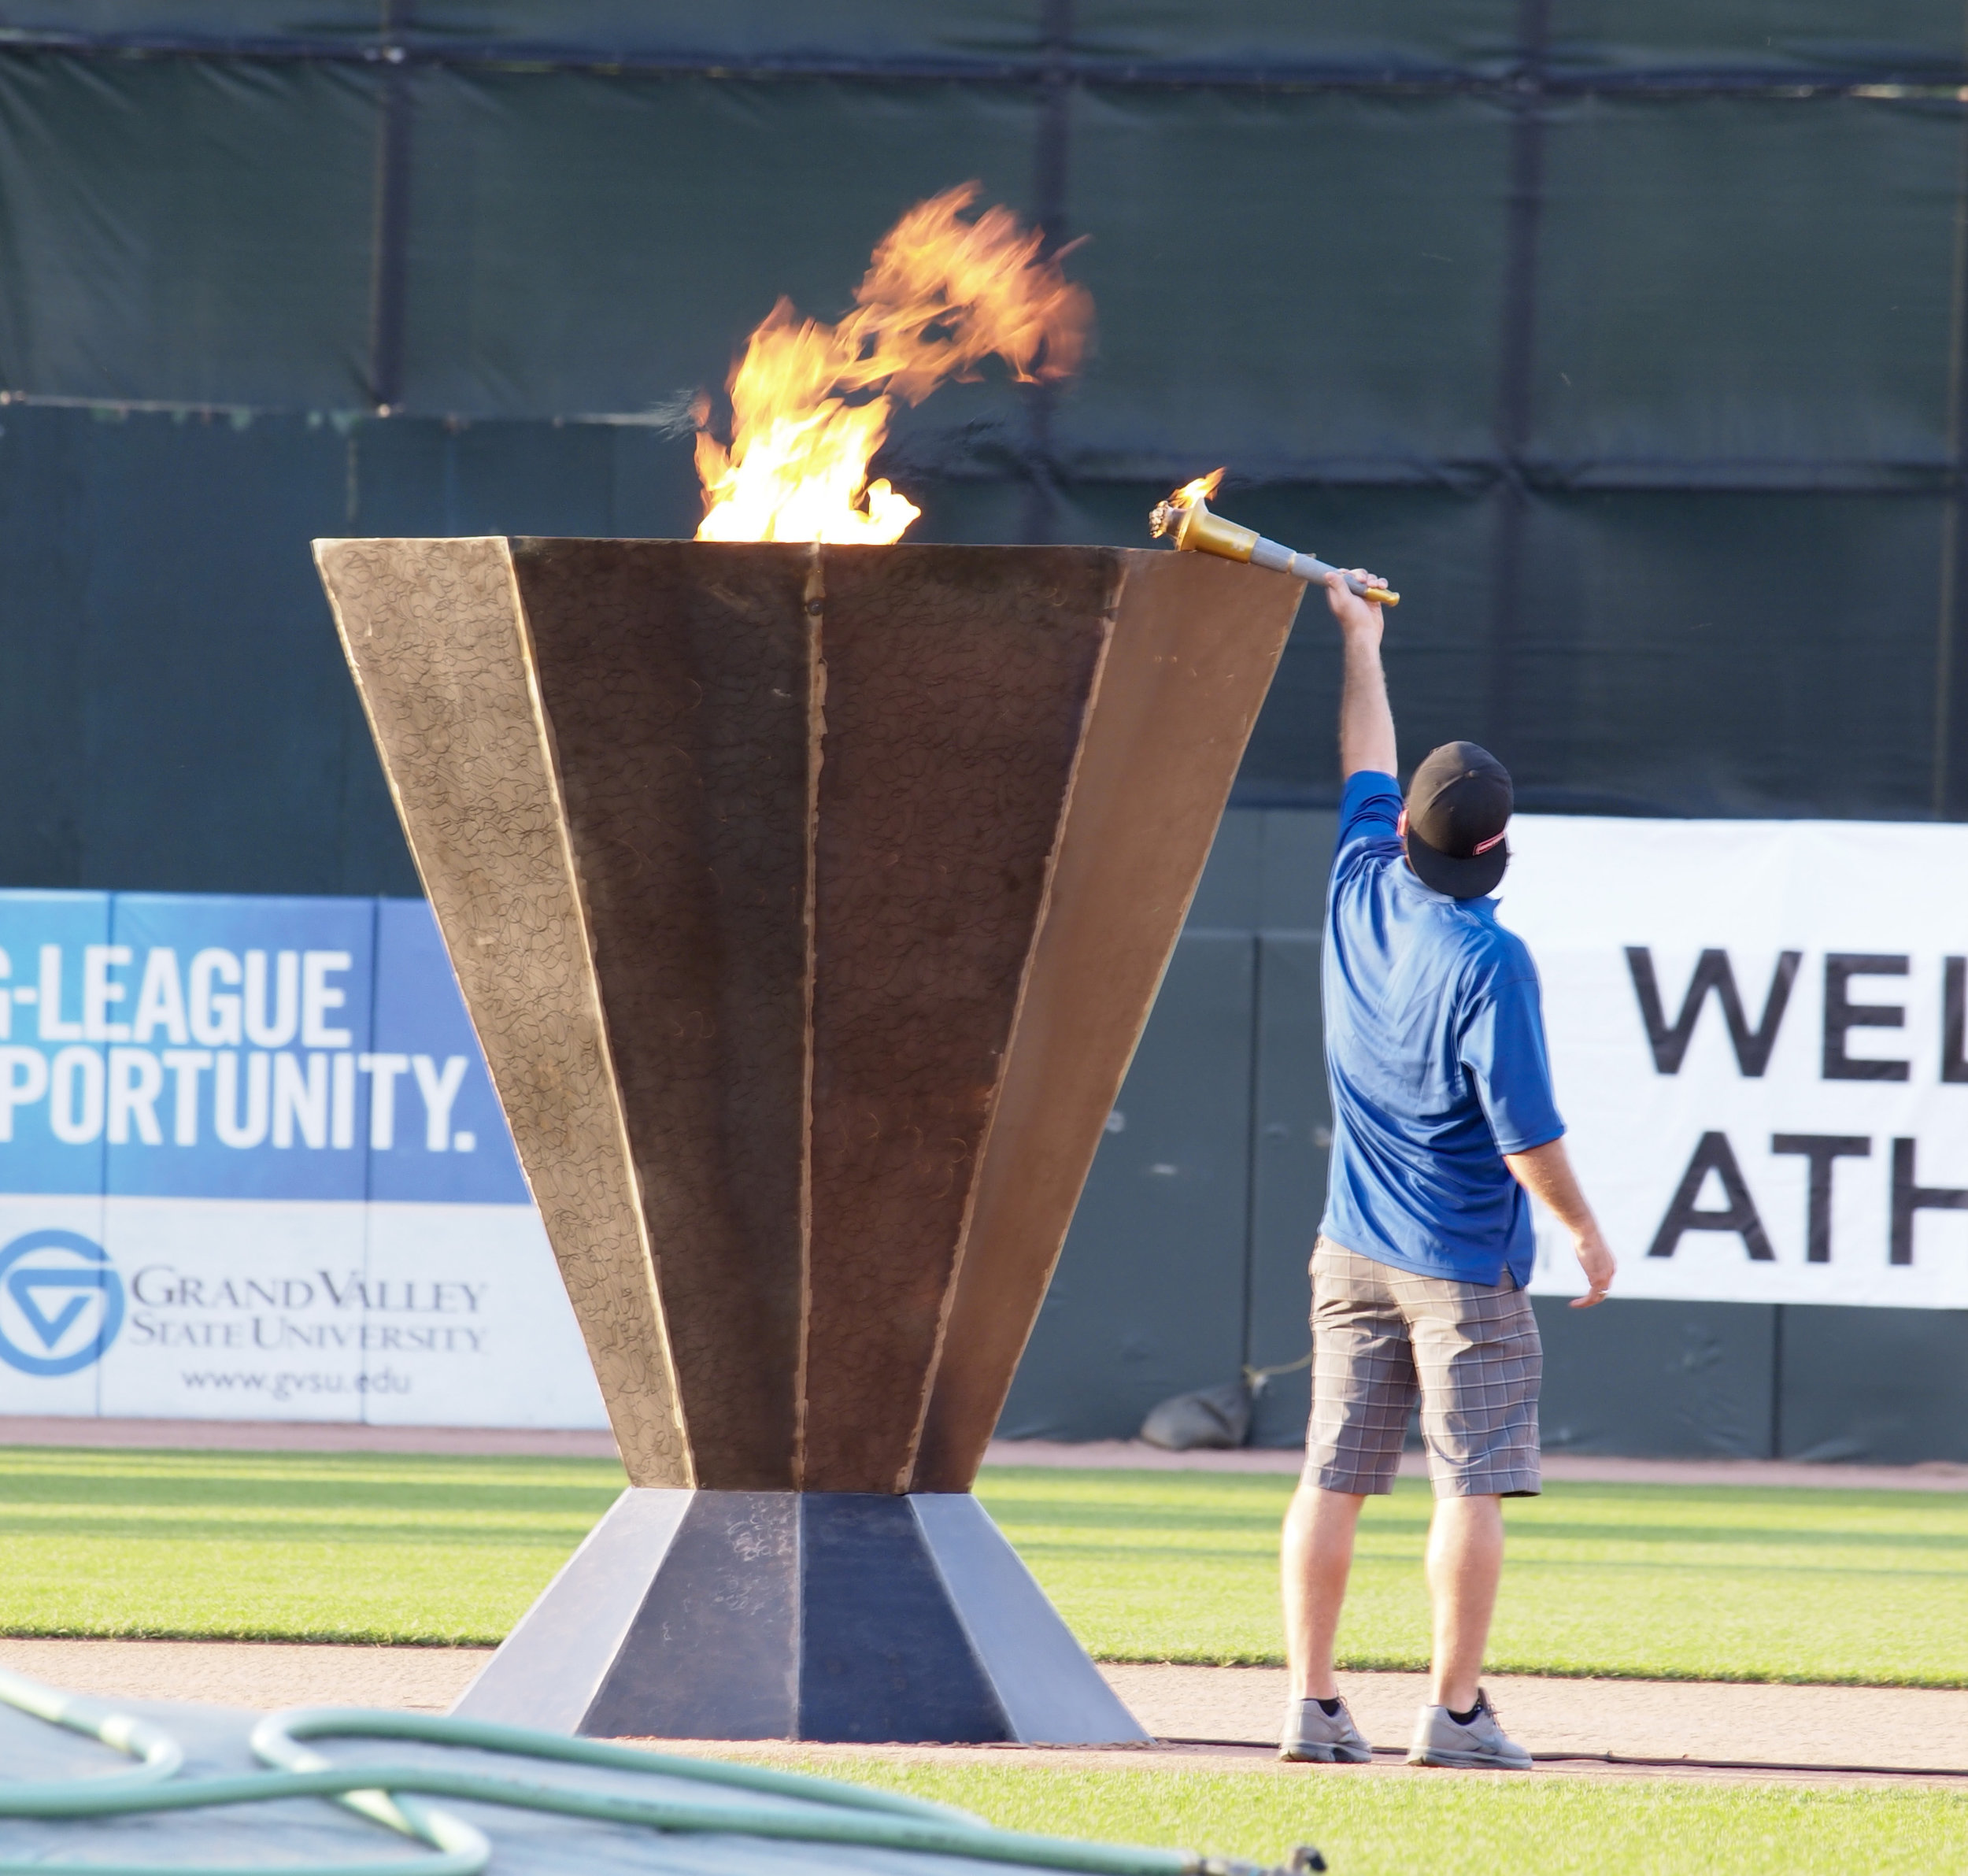 2019 Opening Ceremony - Join us June 21, 2019 at Fifth Third Ballpark. We will be celebrating the 10th Anniversary of the Meijer State Games of Michigan.Athletes will have the opportunity to represent their sport in the athlete parade.Learn more about Opening Ceremony.